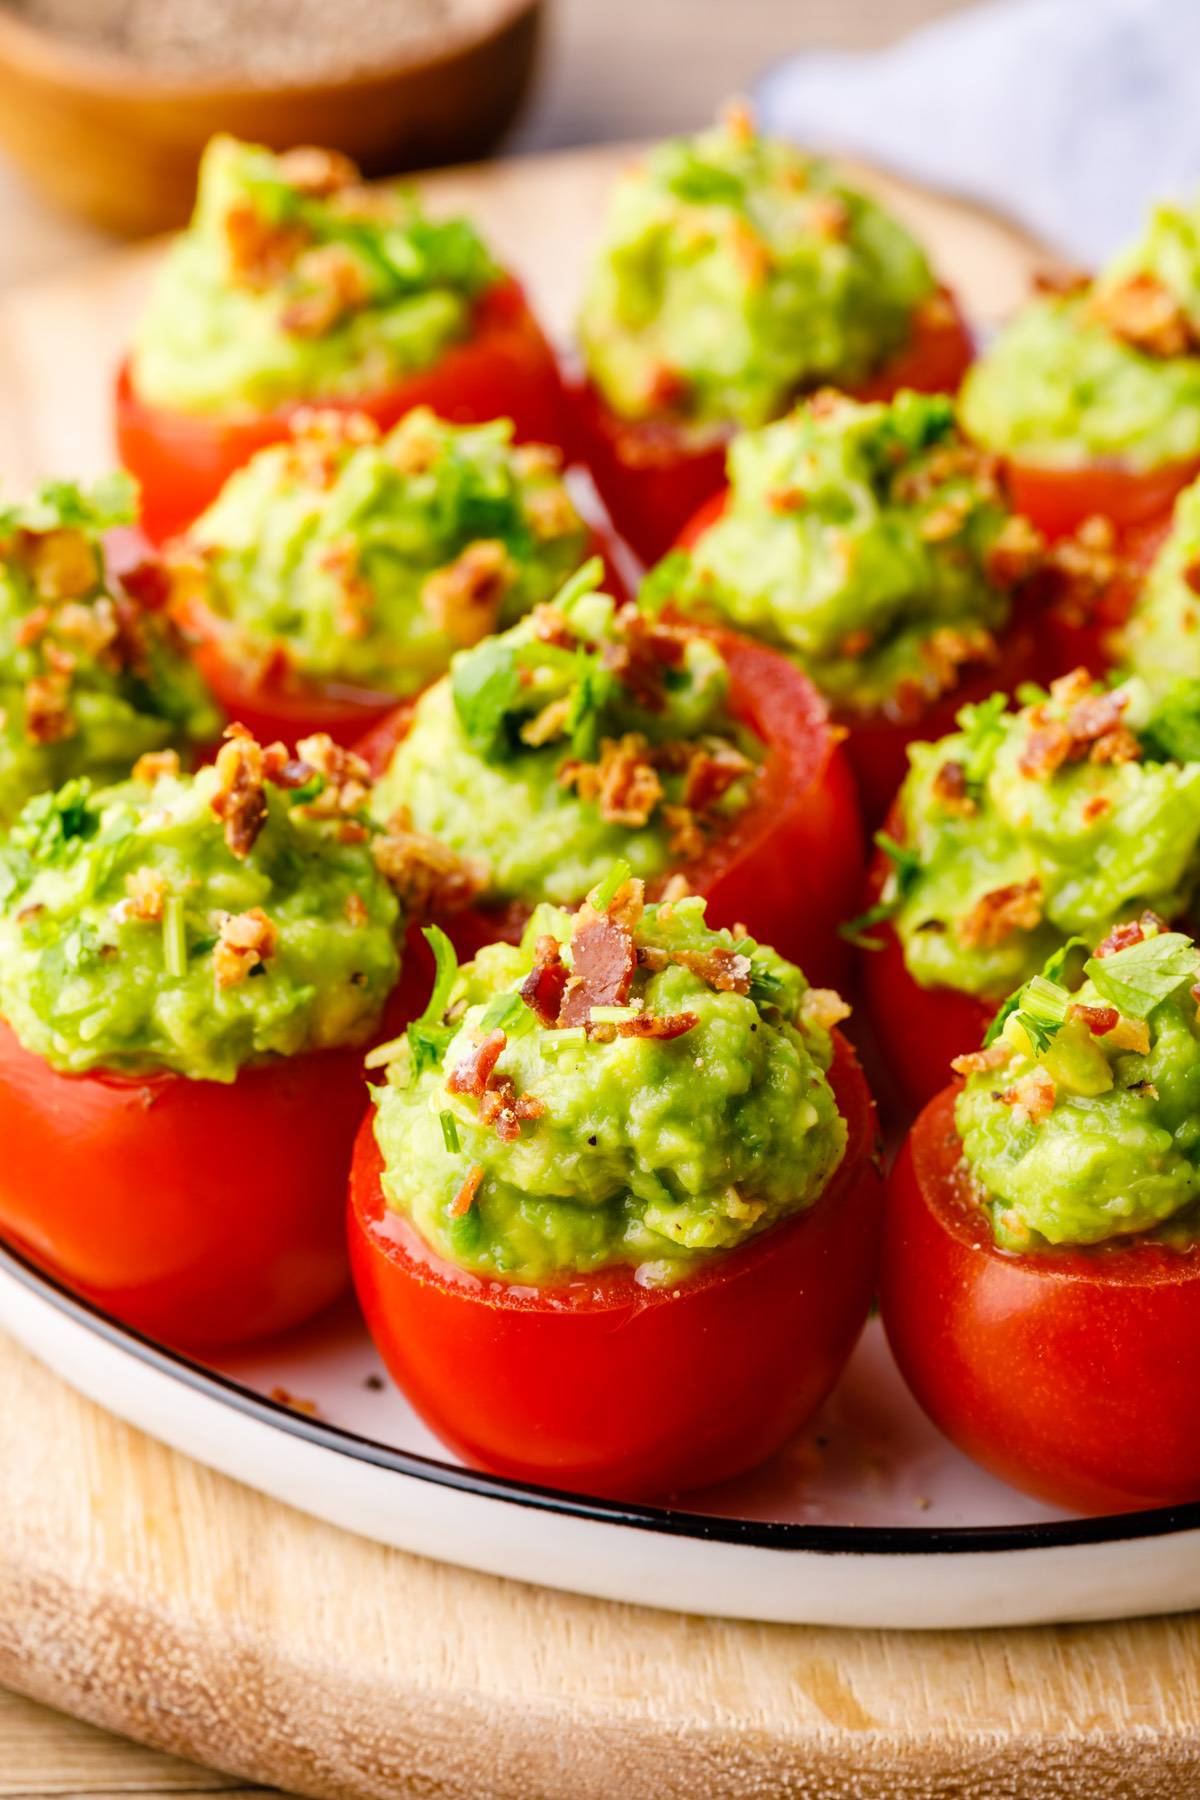 Home.fit blt-tomato-bites-4 Low Carb Guacamole Stuffed BLT Tomato Bites